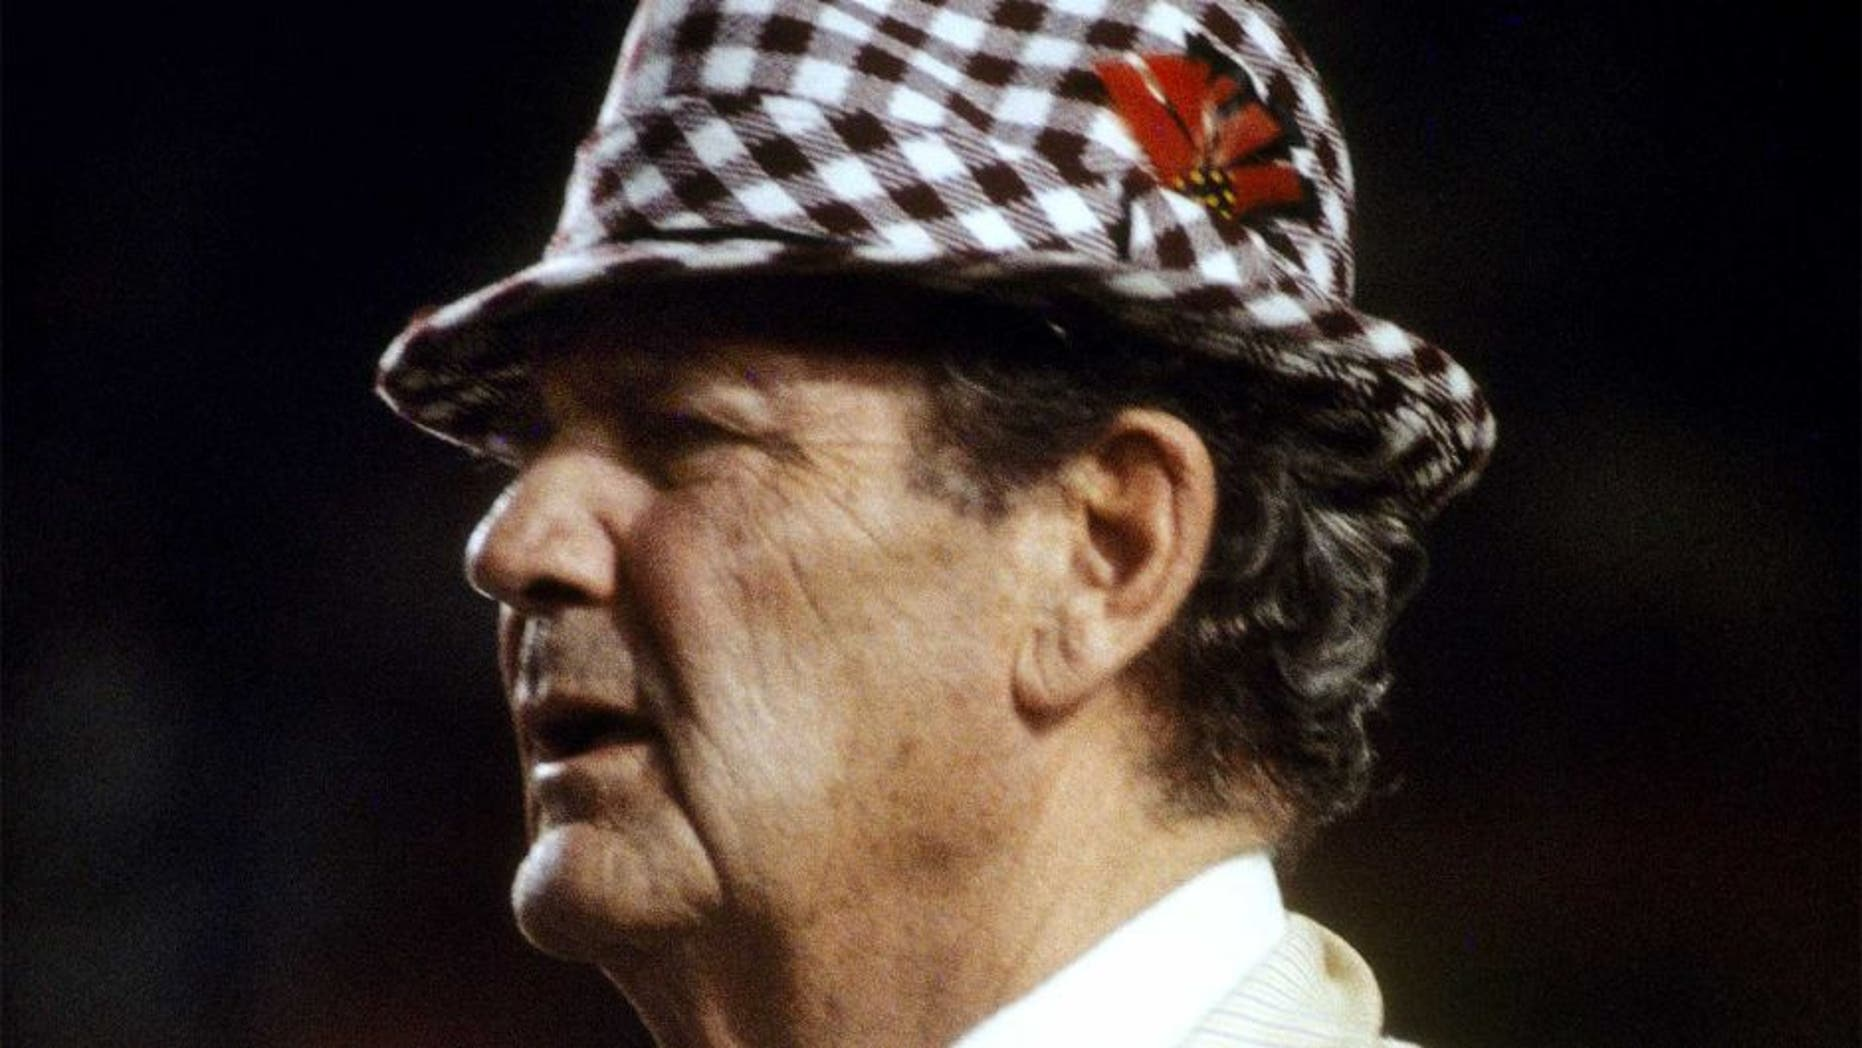 """CIRCA 1980'S: Head Coach Paul """"Bear"""" Bryant of the Alabama Crimson Tide watches play from the sideline during an NCAA football game circa early 1980's. Bryant coached at Alabama from 1958-82. (Photo by Focus on Sport/Getty Images)"""